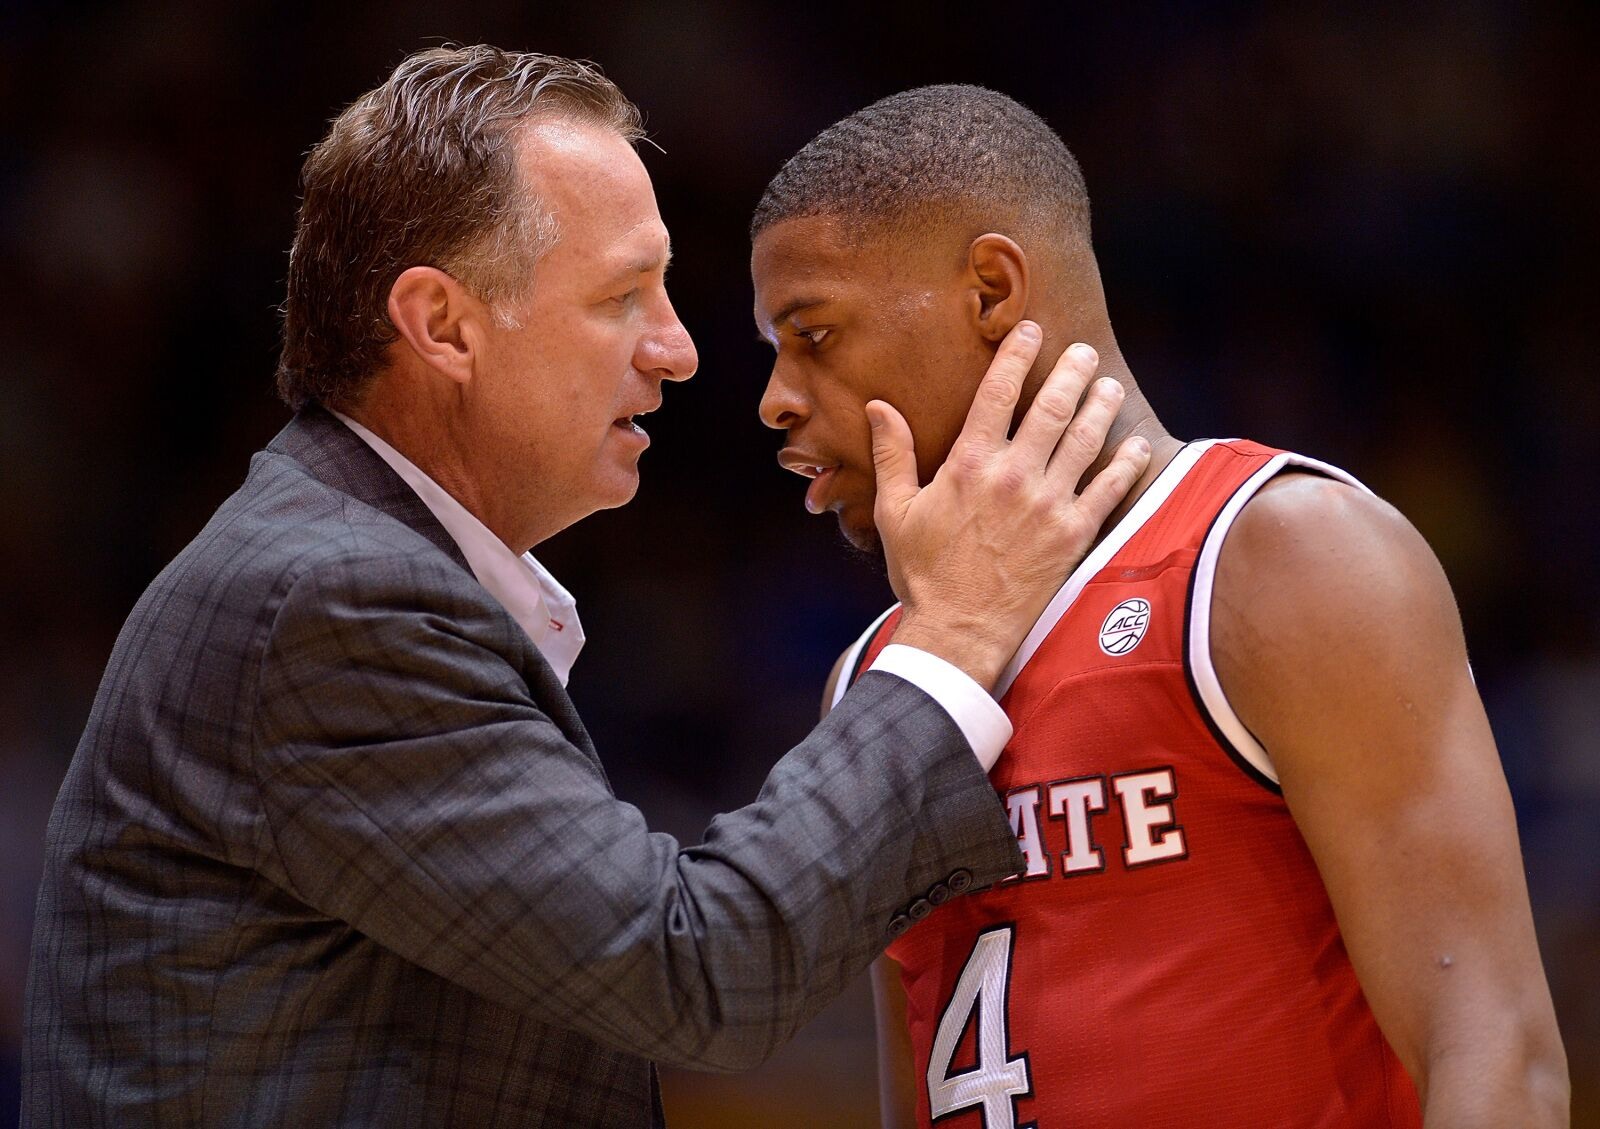 NCAA Basketball: Move on Mark Gottfried shows head coaches can't hide